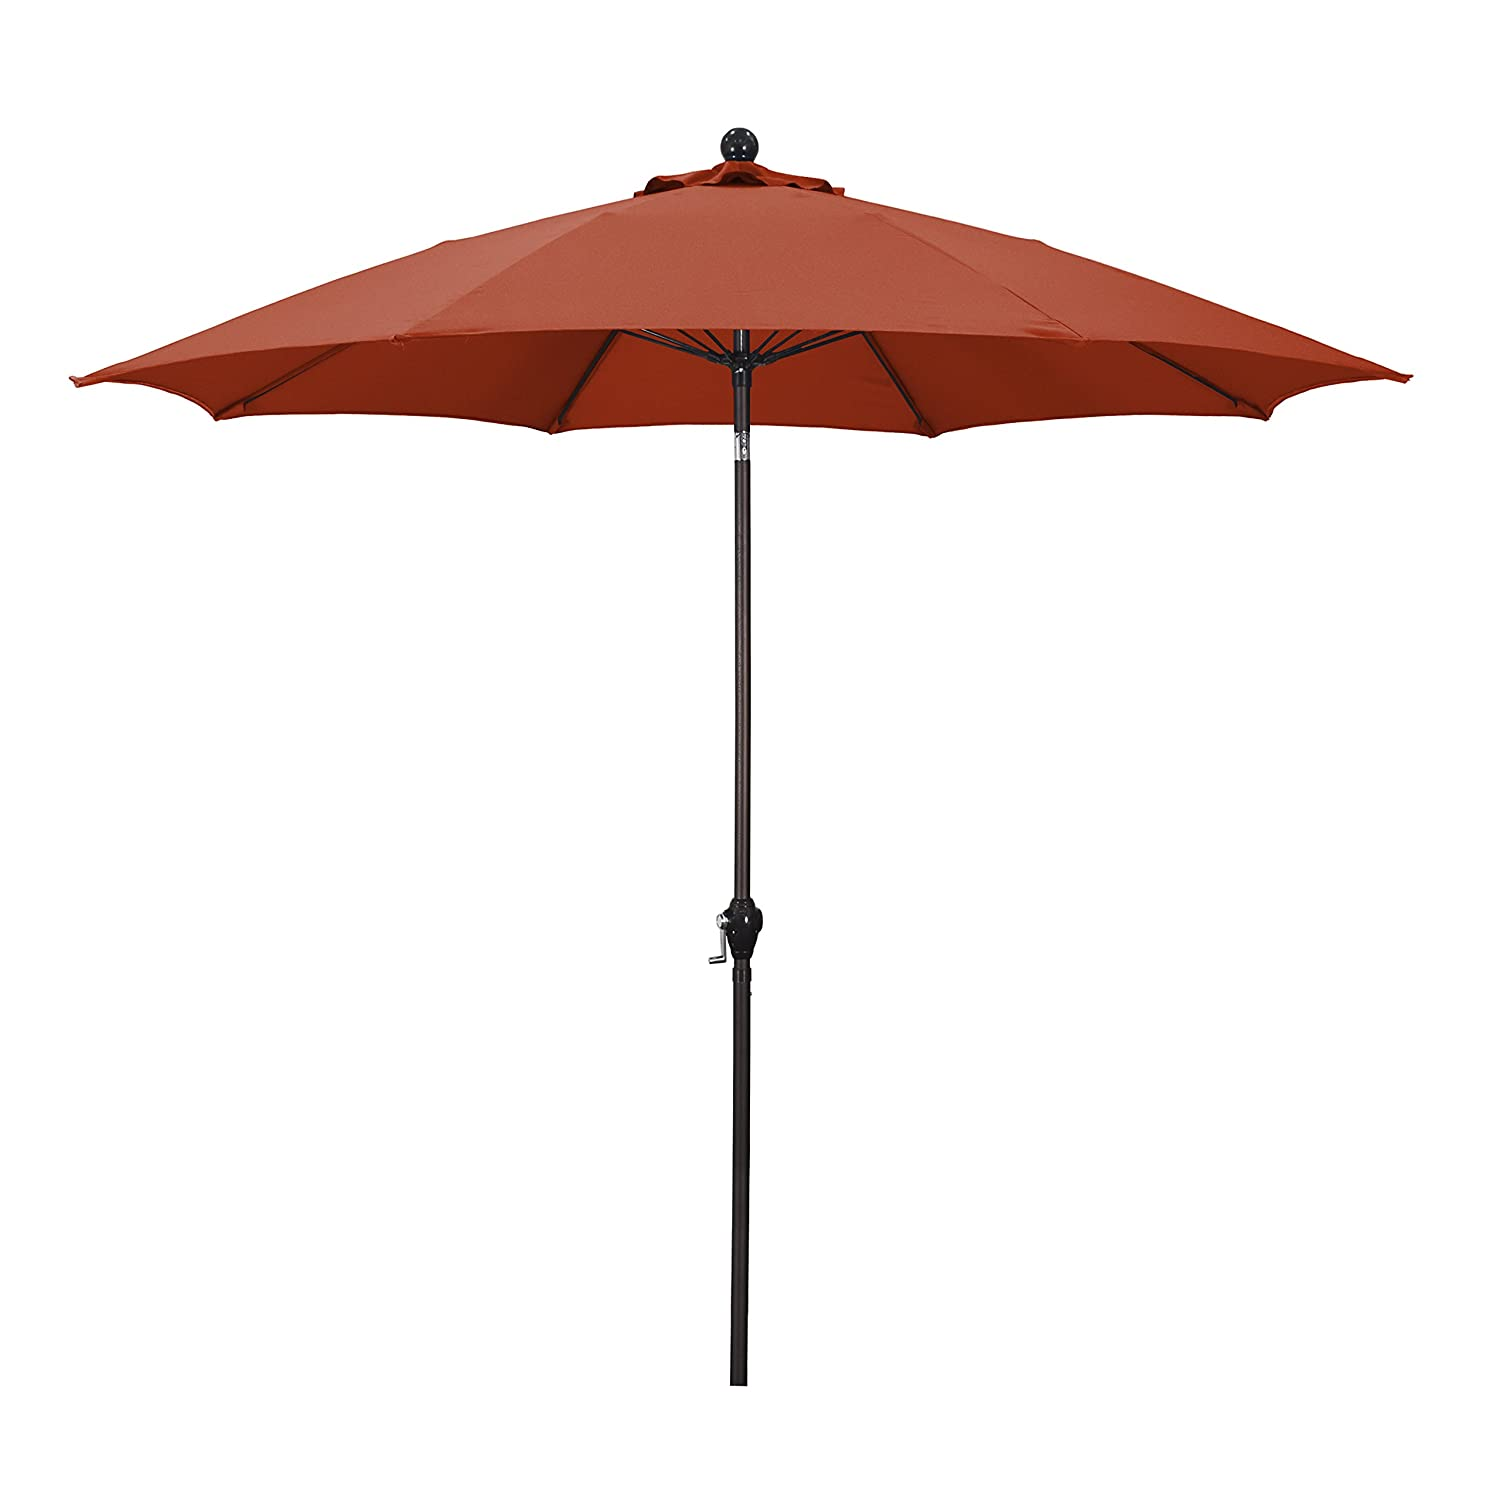 outdoor women pin black patio umbrella blue parasol large rain windproof fashion business automatic male fold